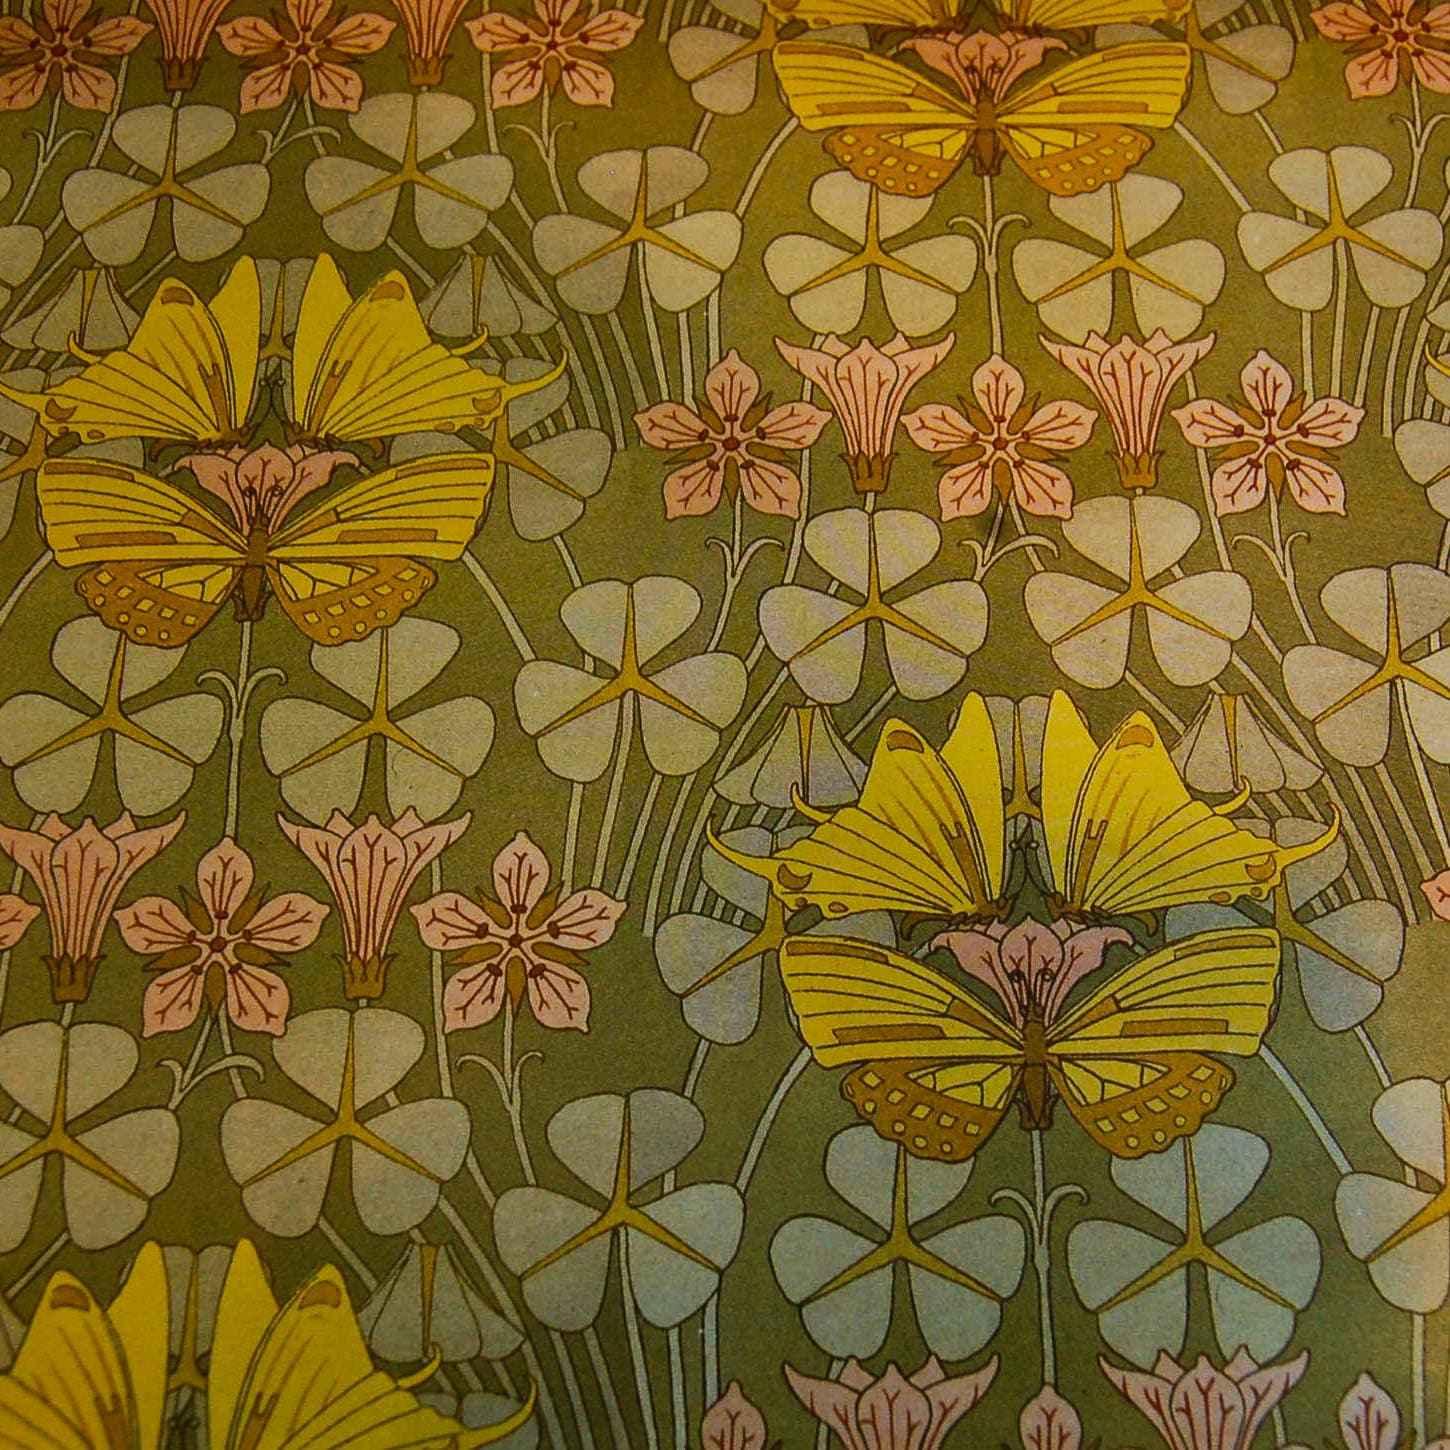 Decorative Paper, Art Nouveau Golden Butterflies on Clover Leaves ...